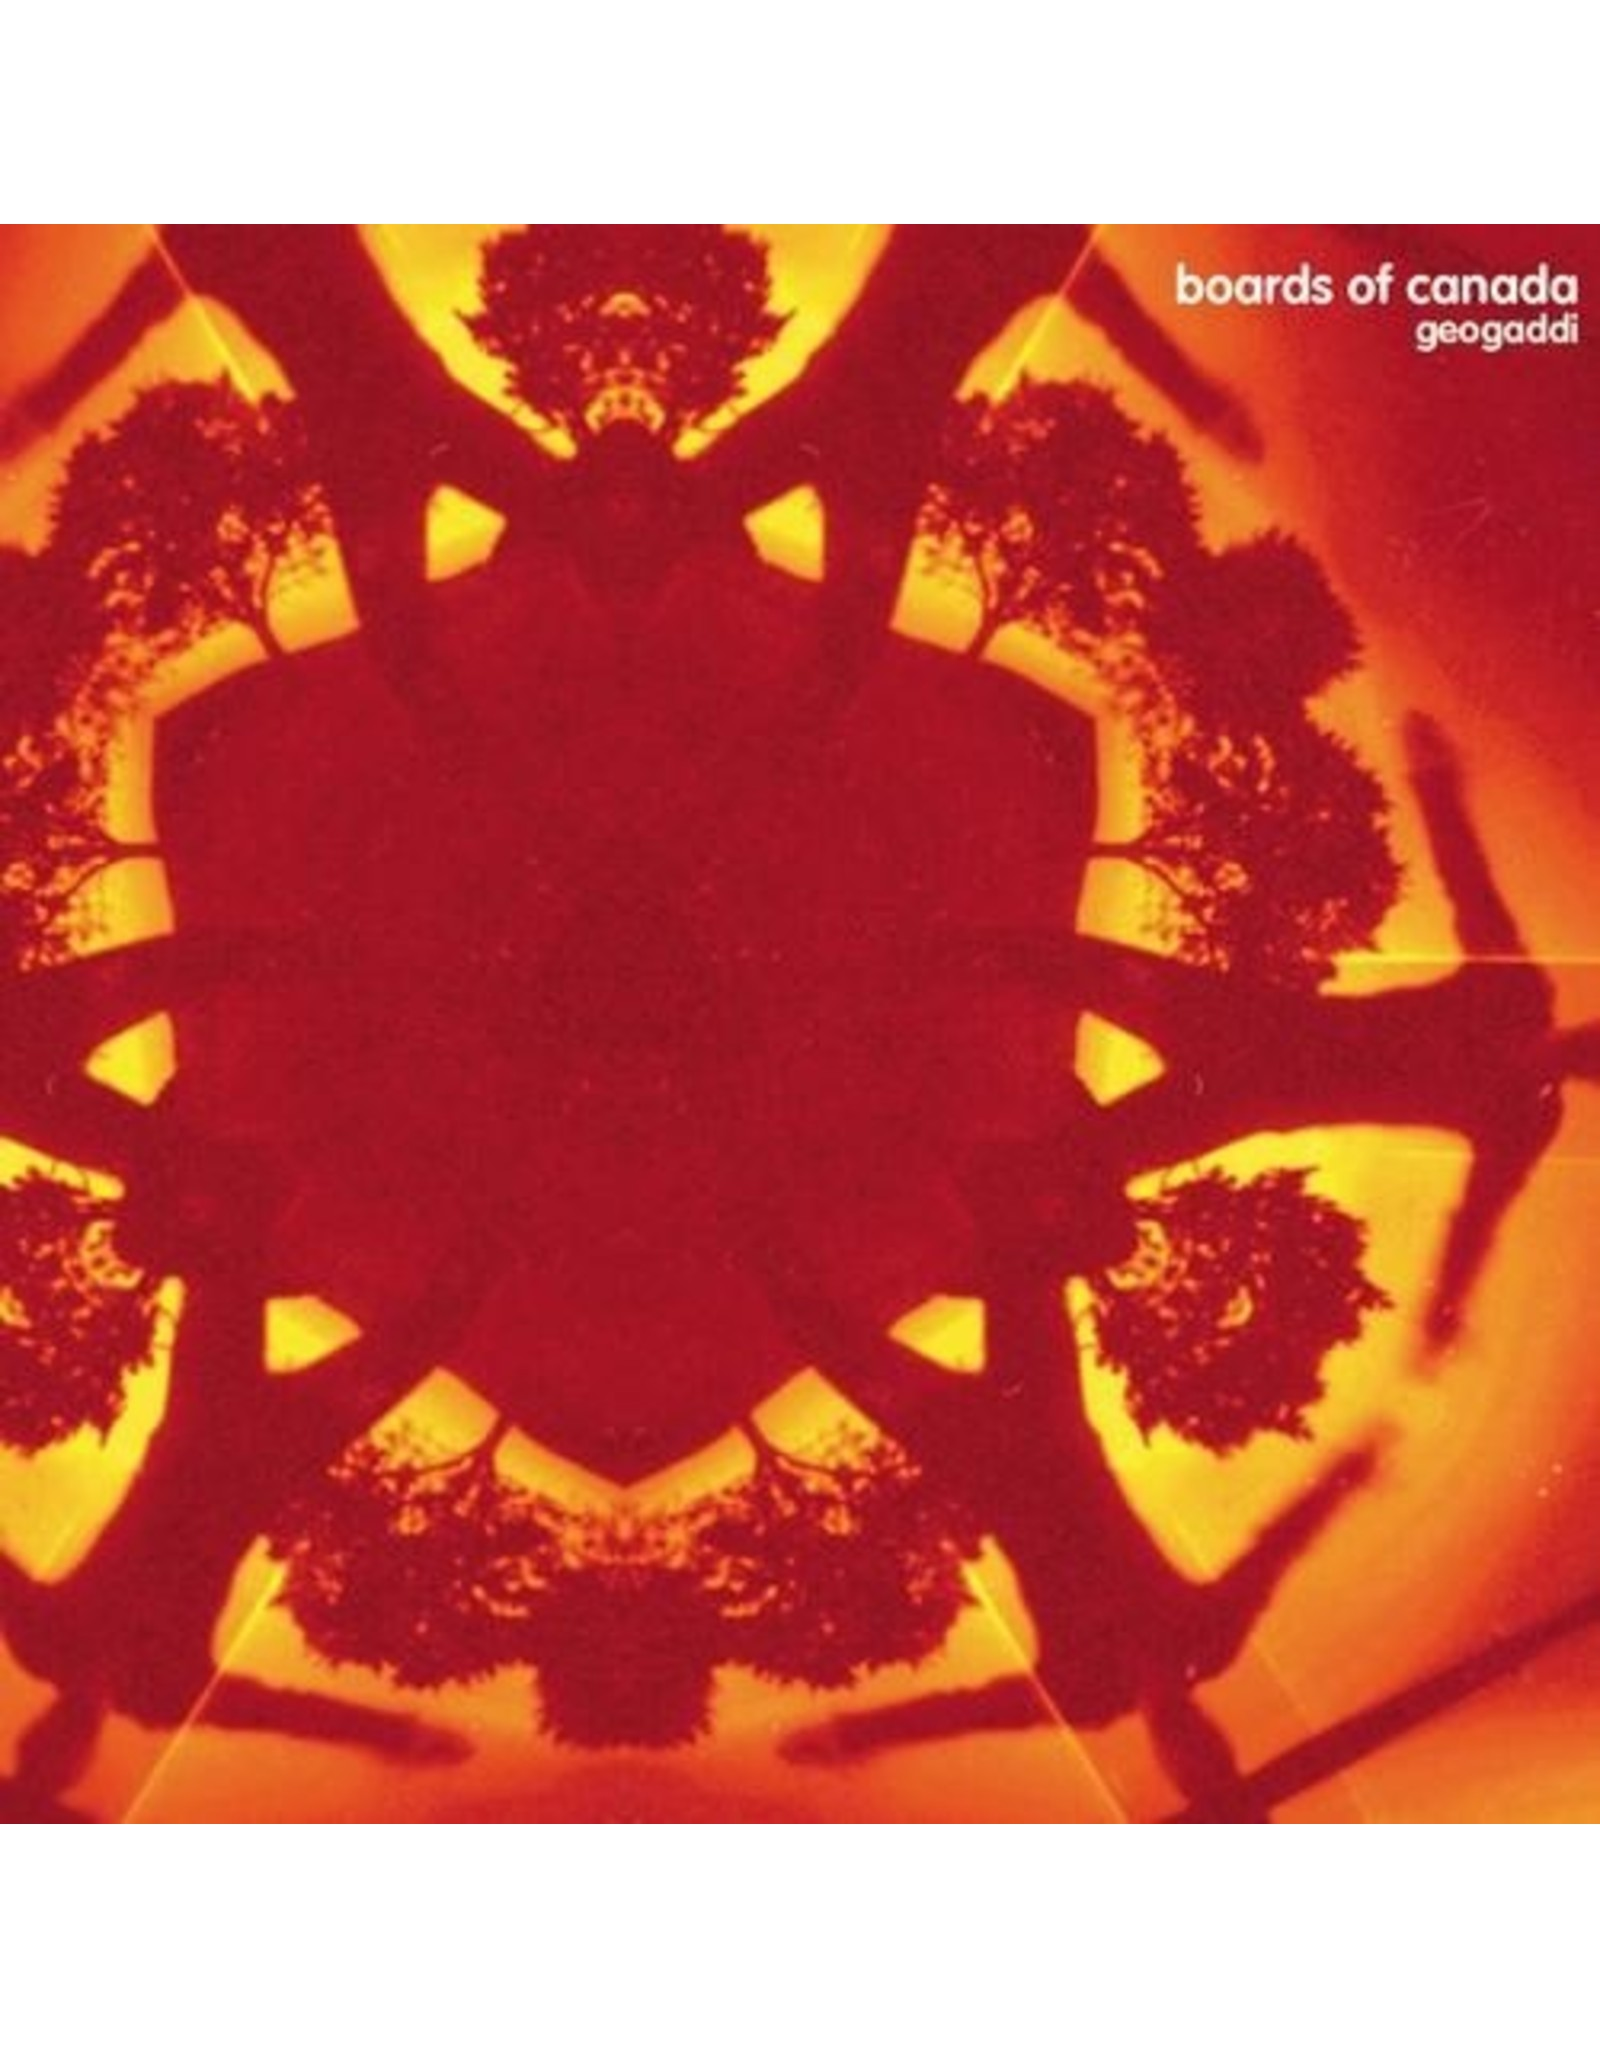 New Vinyl Boards Of Canada - Geogaddi 3LP